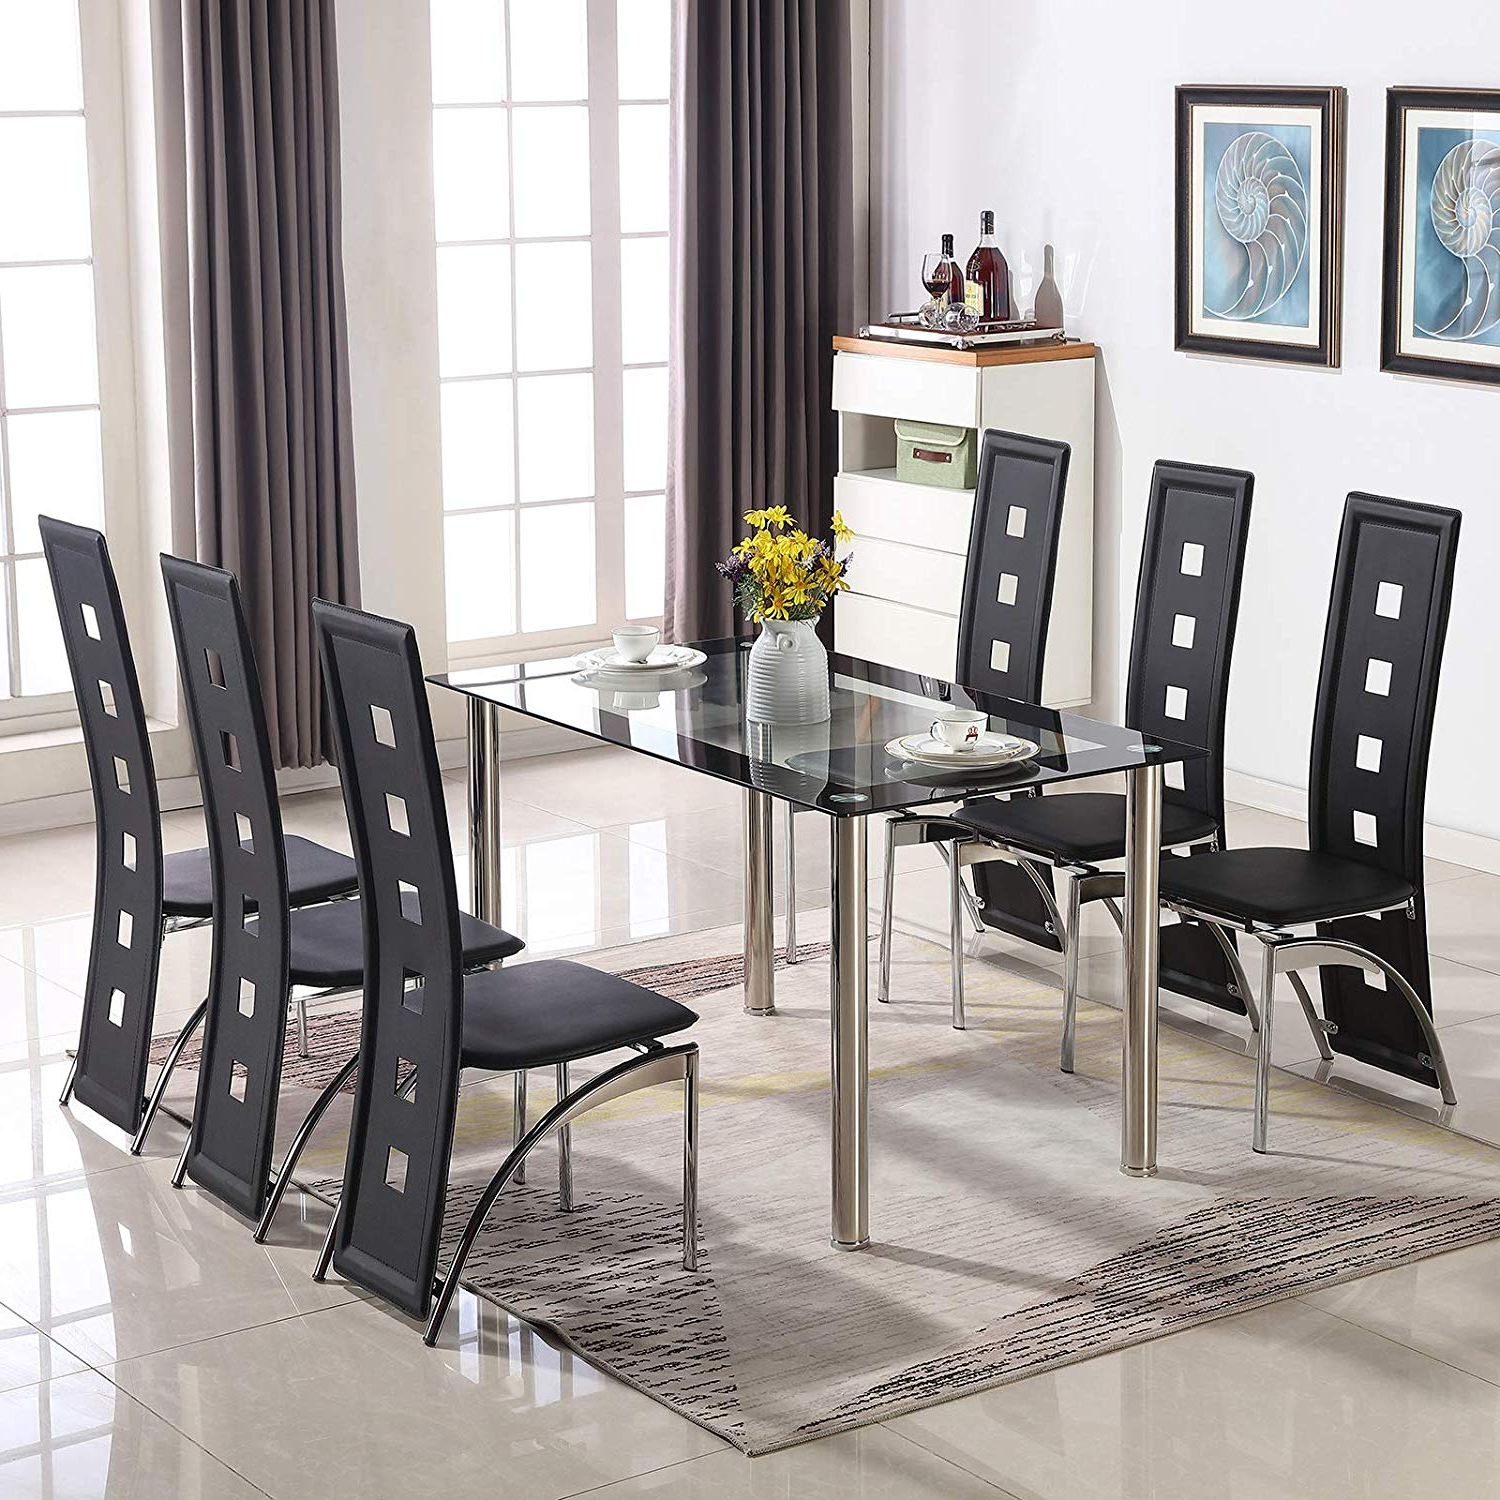 Well Known Glass Dining Tables With Metal Legs In Kitchen & Dining Tables Modern Black&clear Tempered Glass (View 21 of 25)